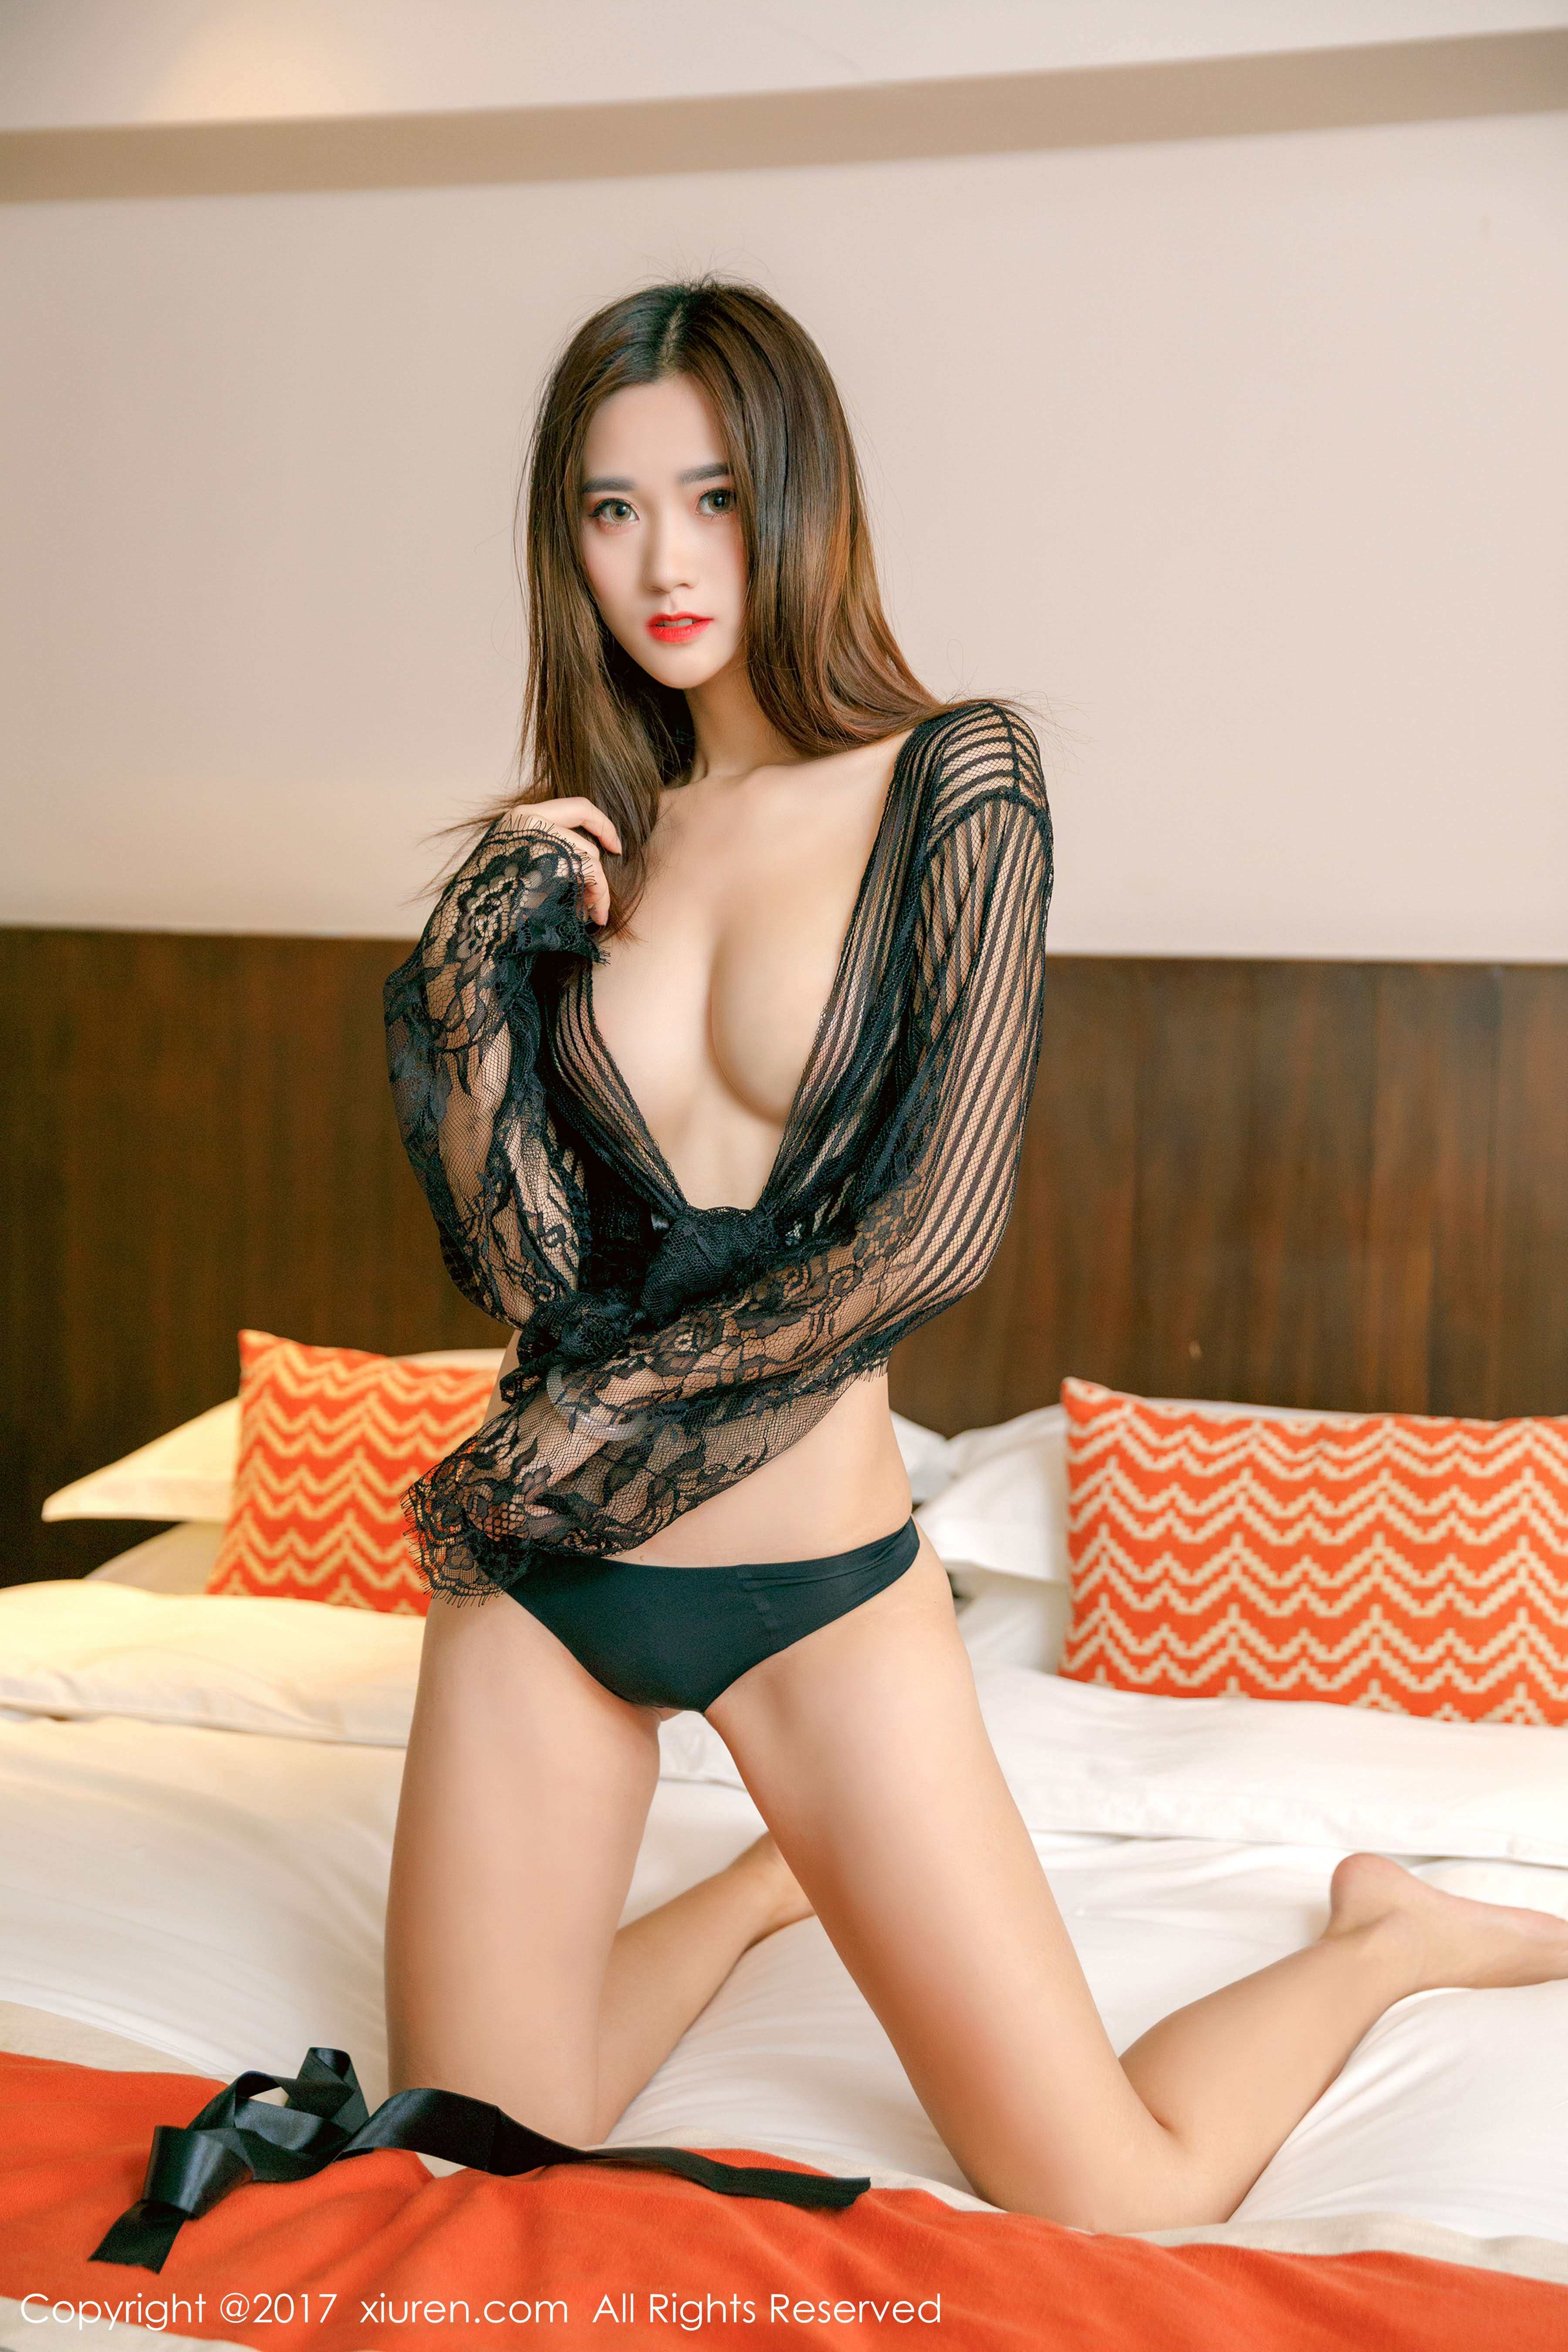 The wonderful performance of sexy and charming Chinese girls